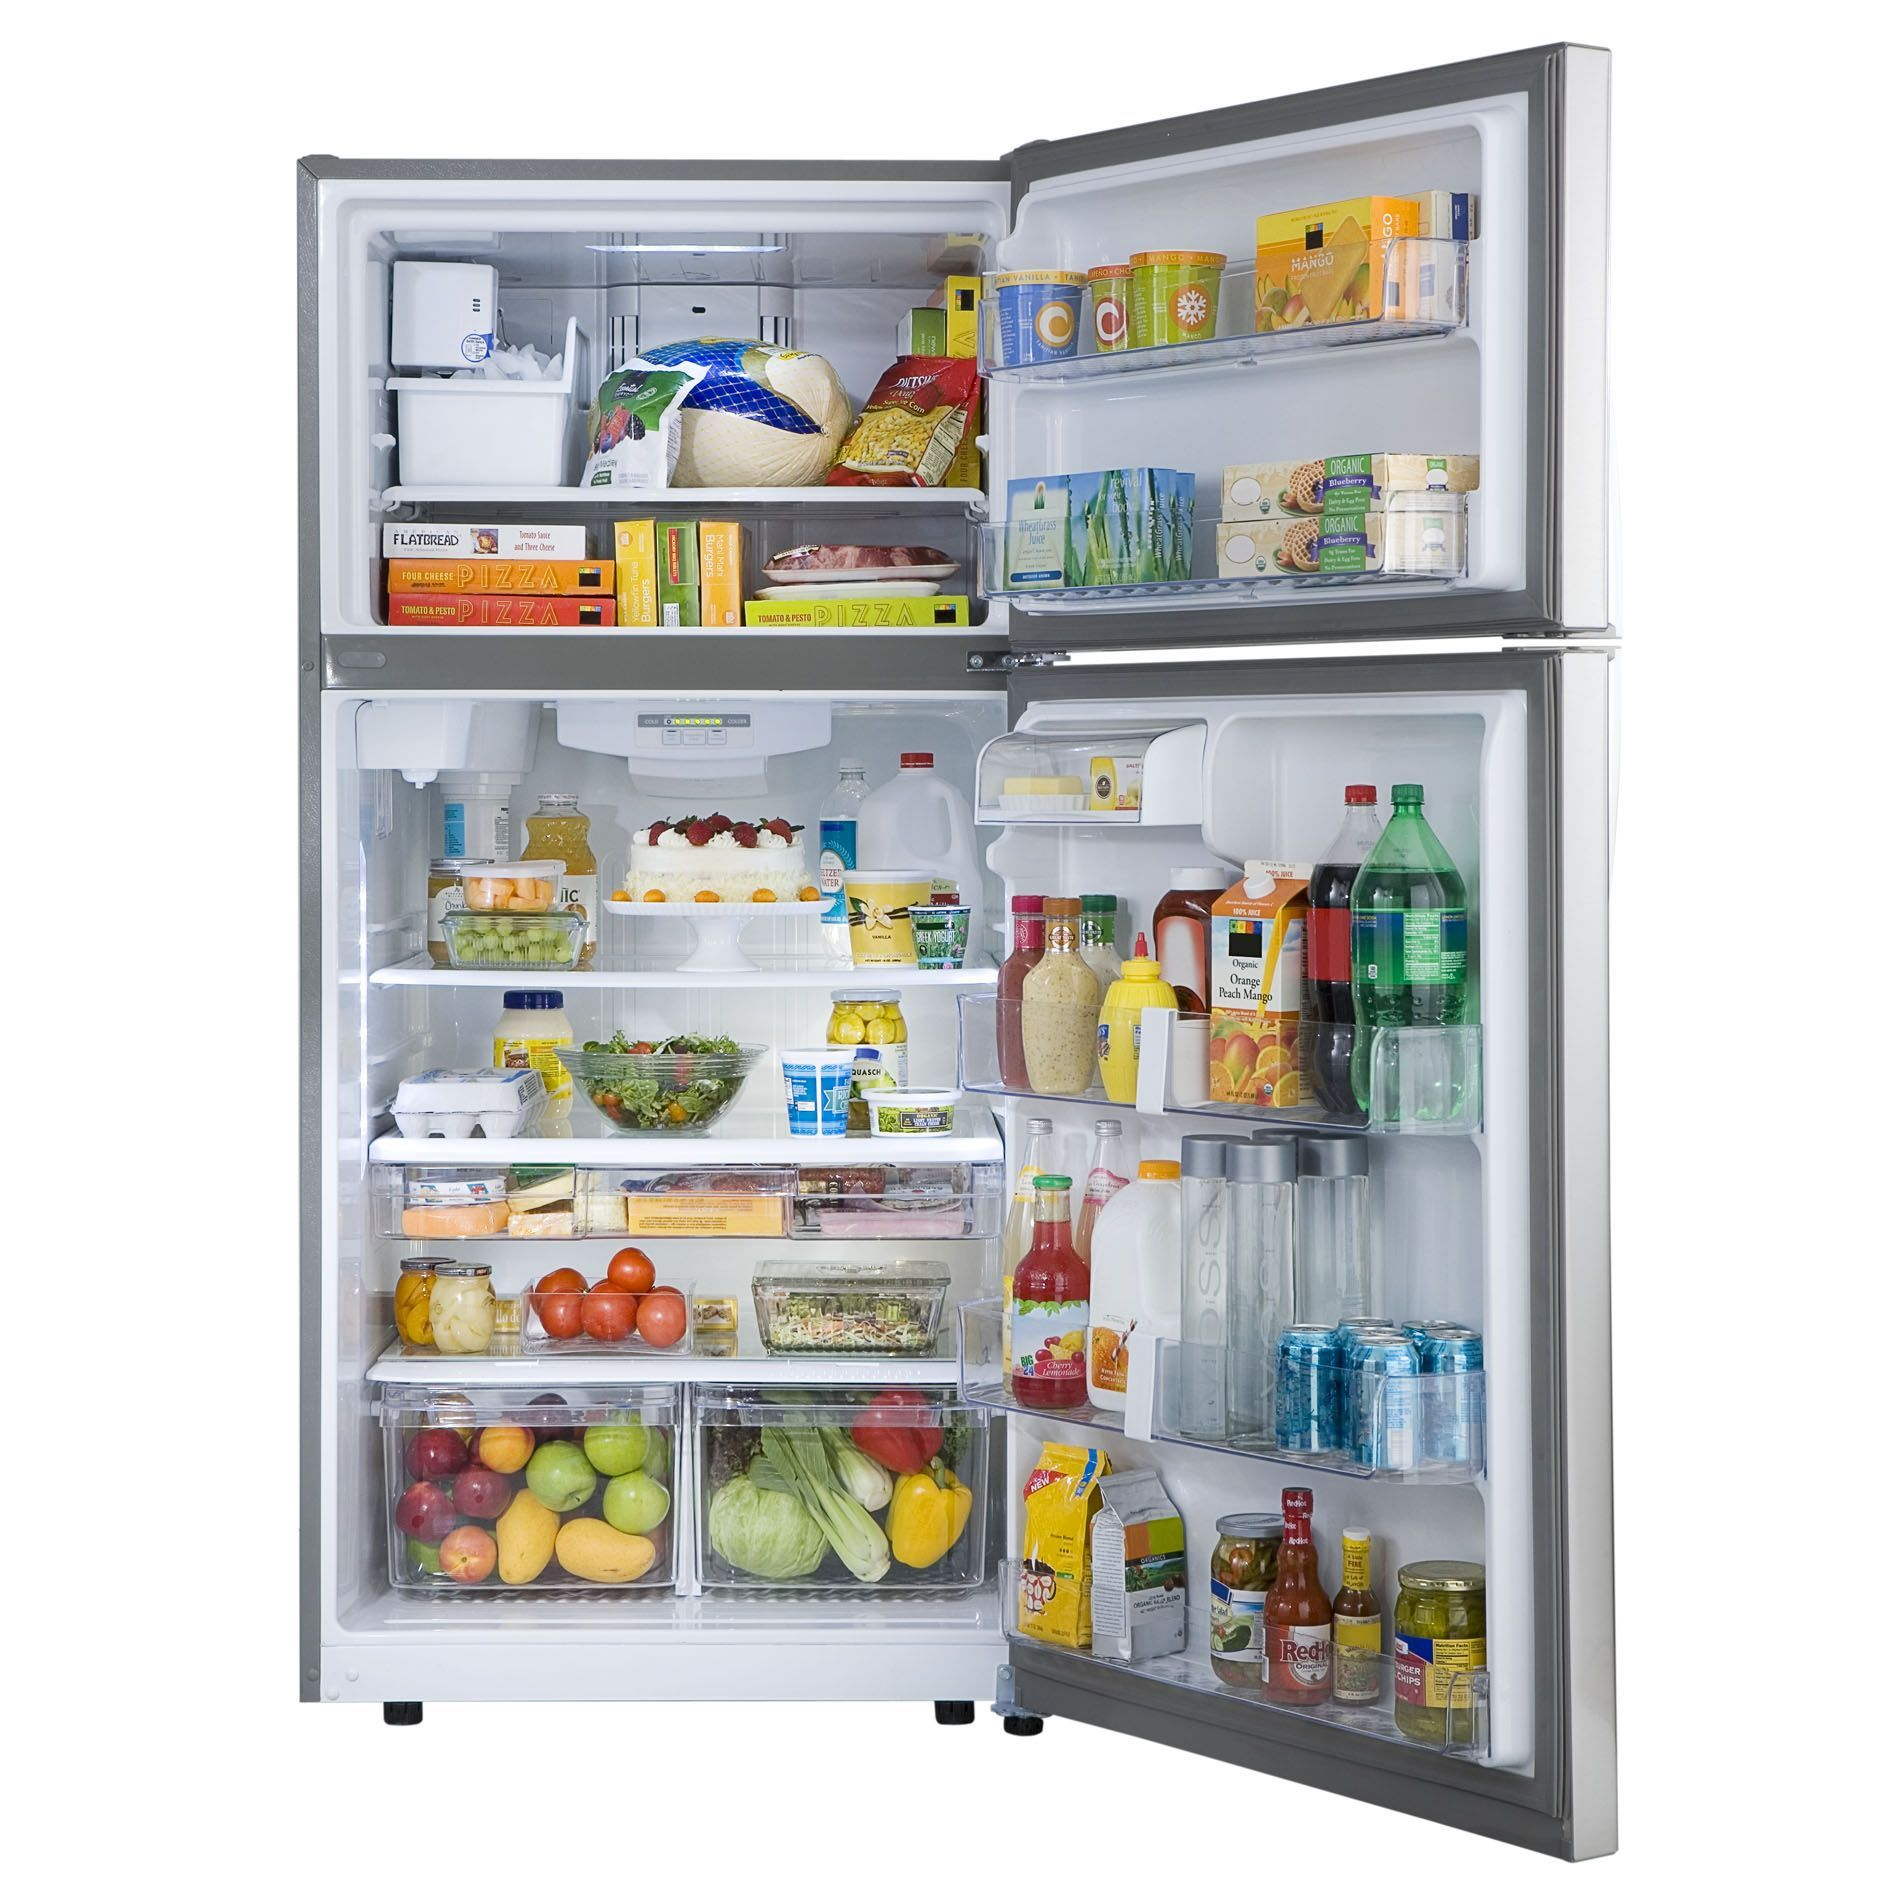 Kenmore 79433 23 8 Cu Ft Top Freezer Refrigerator W Internal Water Dispenser Stainless In 2020 Top Freezer Refrigerator Refrigerator Large Refrigerator